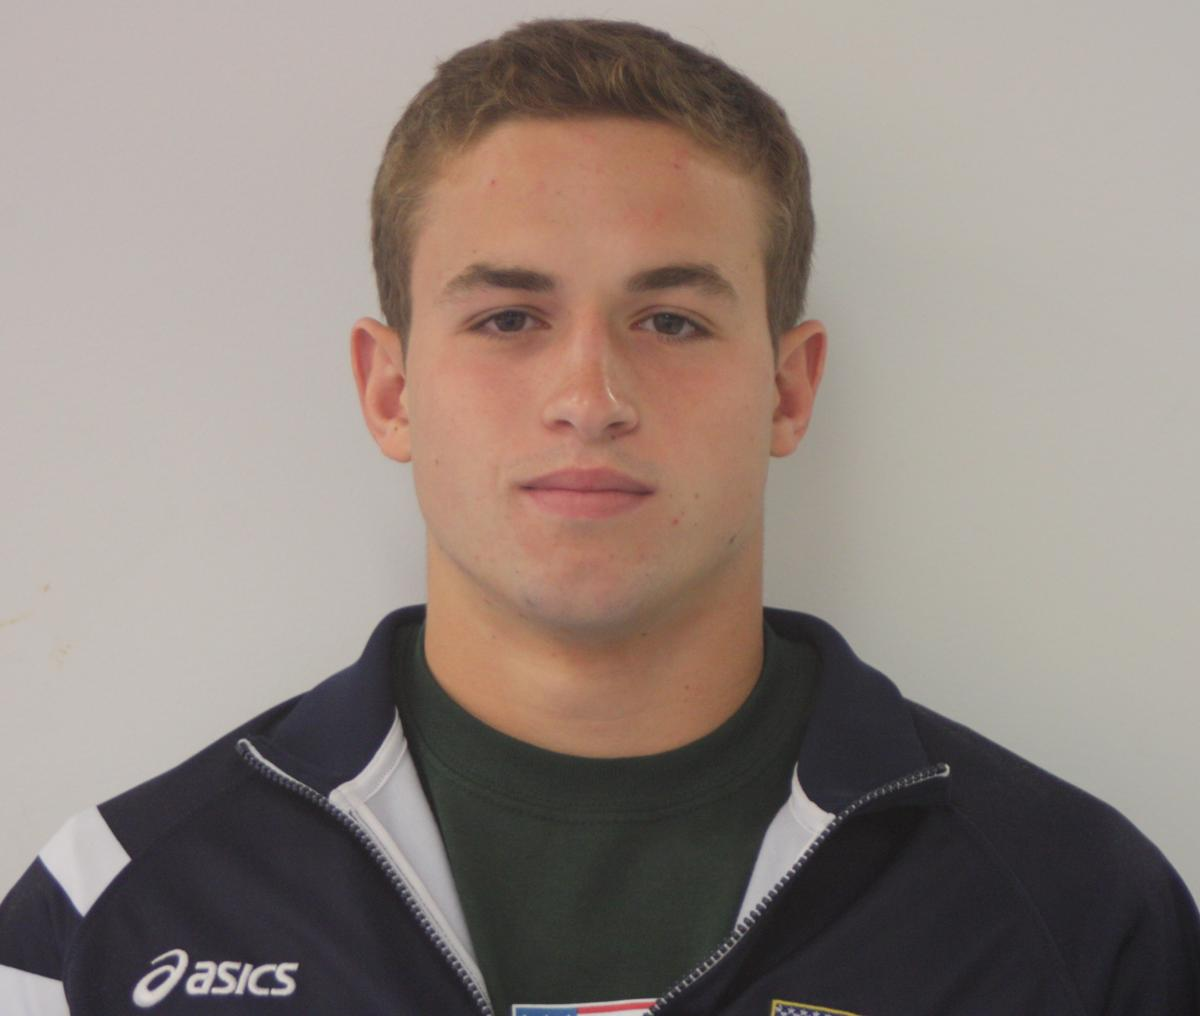 Travis Rice is the 2015 Jacob Curby award recipient from the Northern Michigan University.